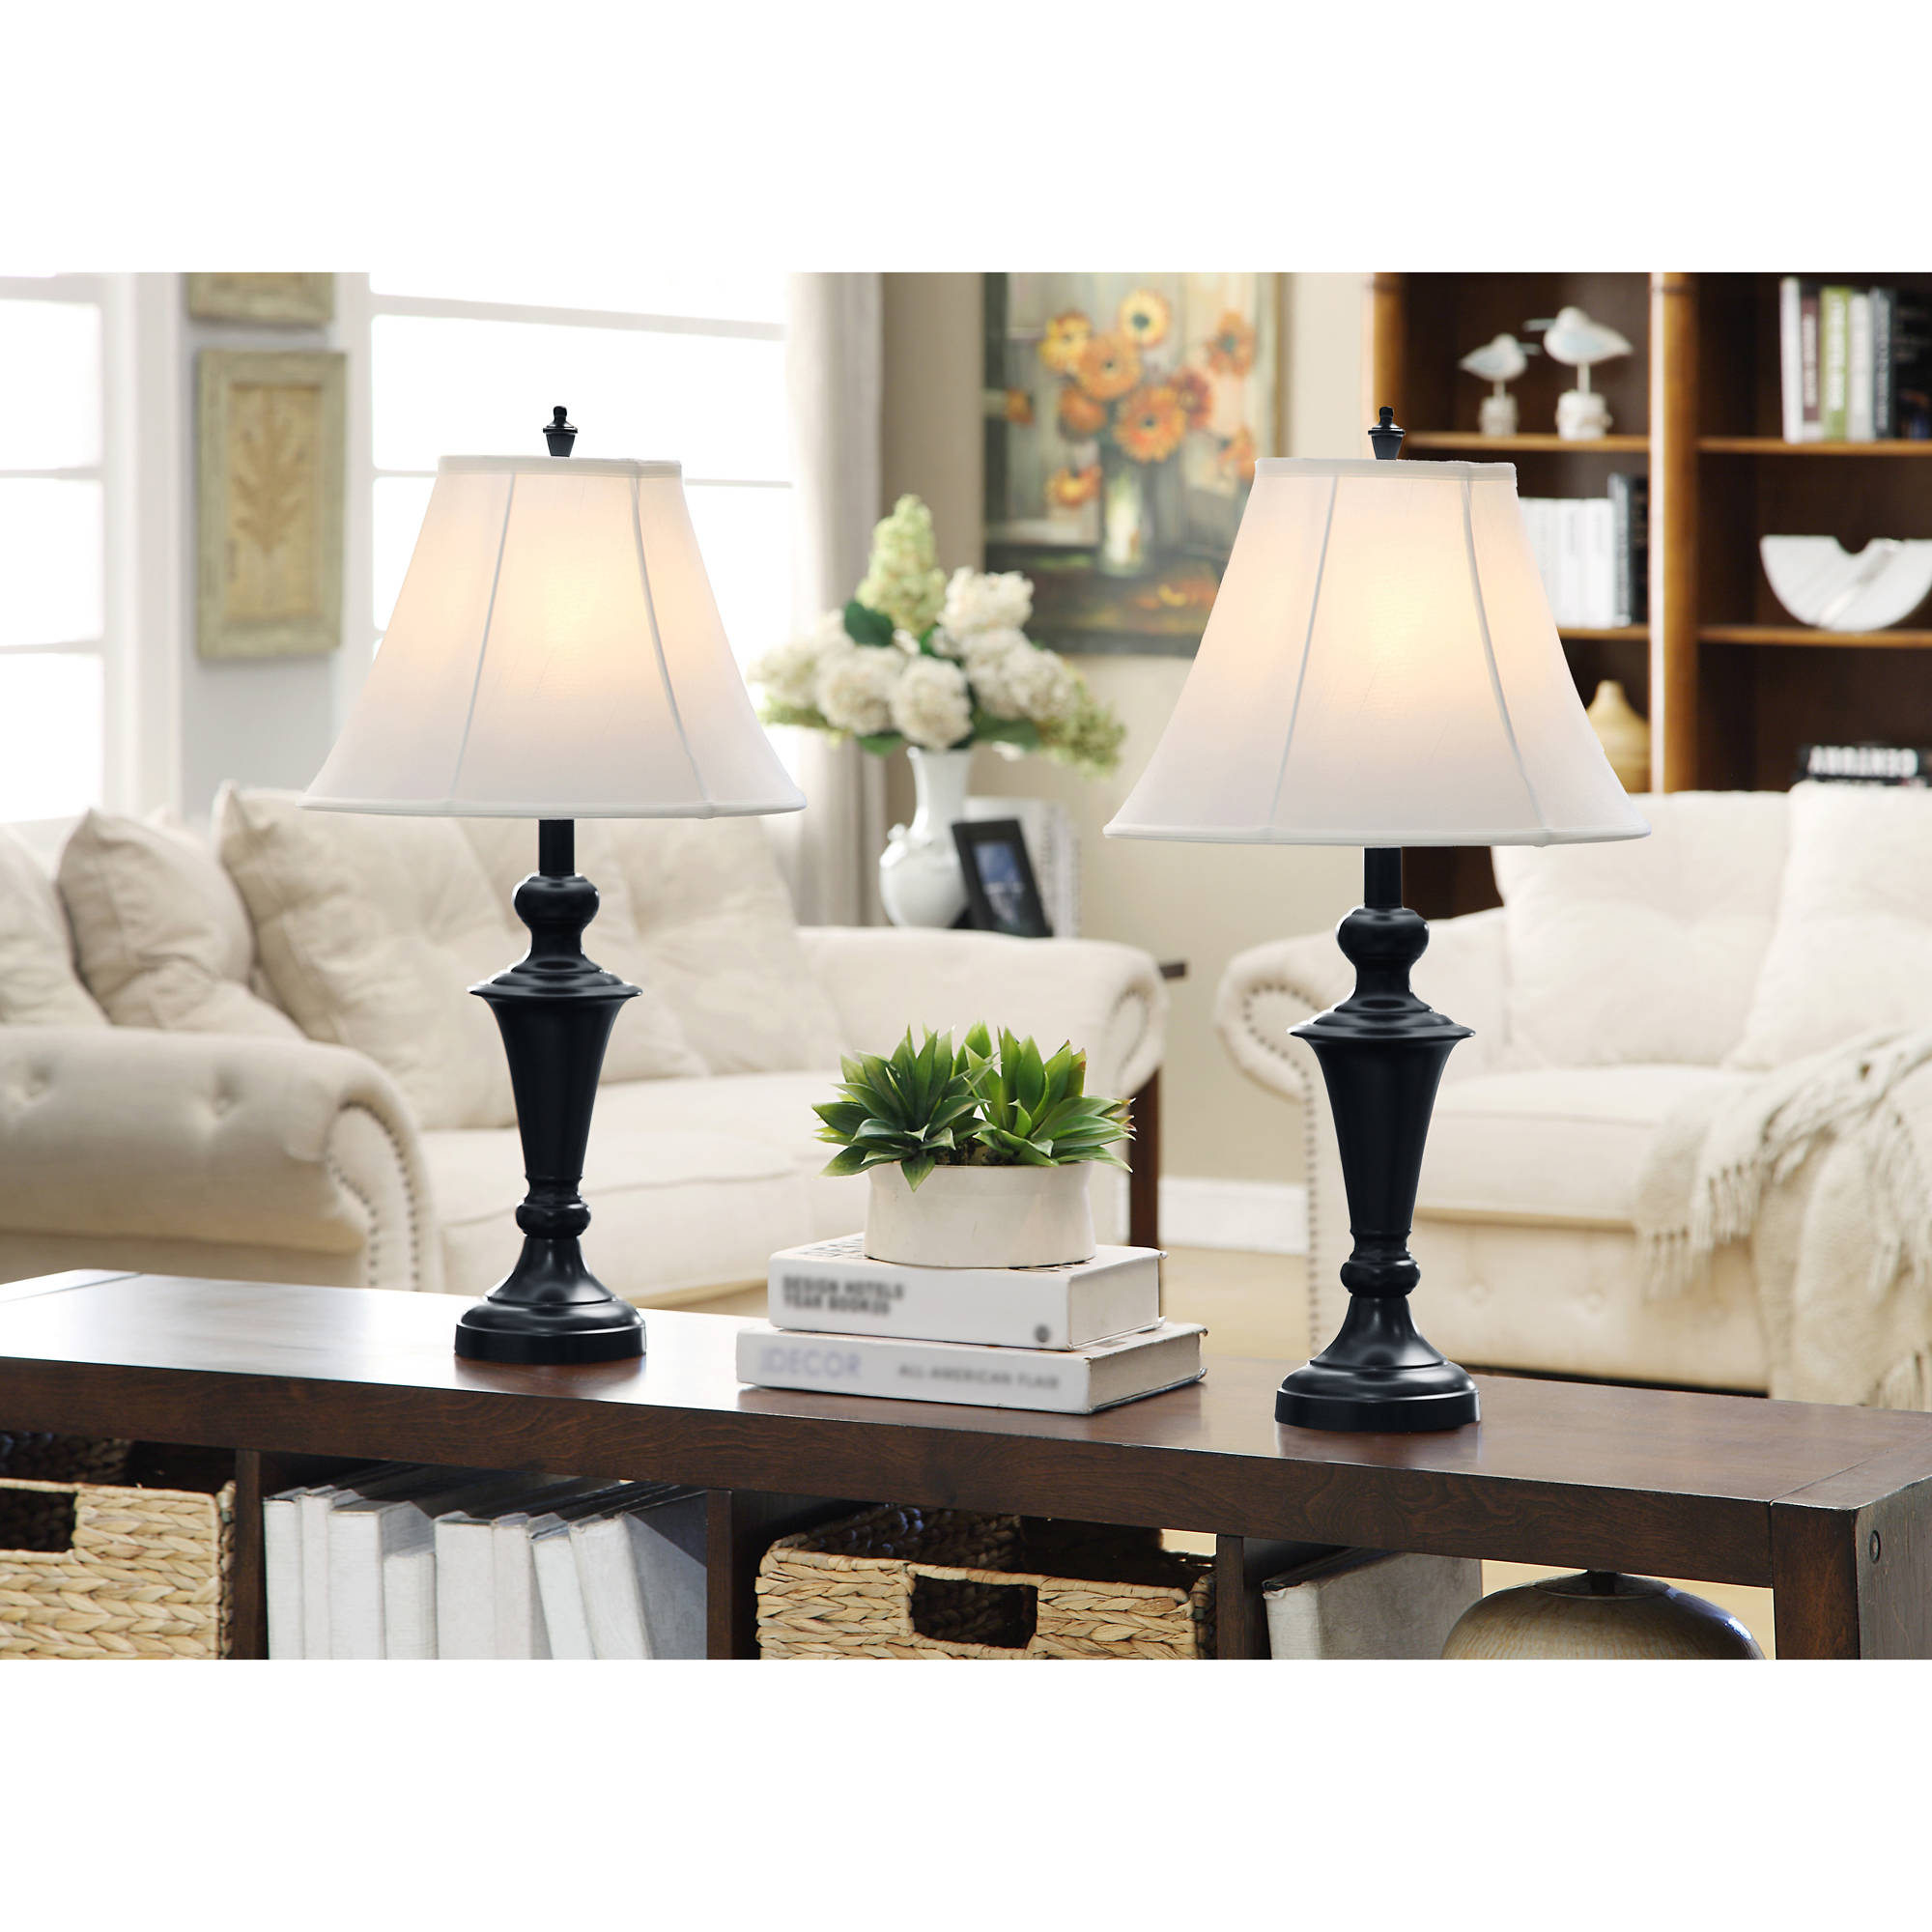 Better Homes and Gardens Lamp Set, Black with White Shades